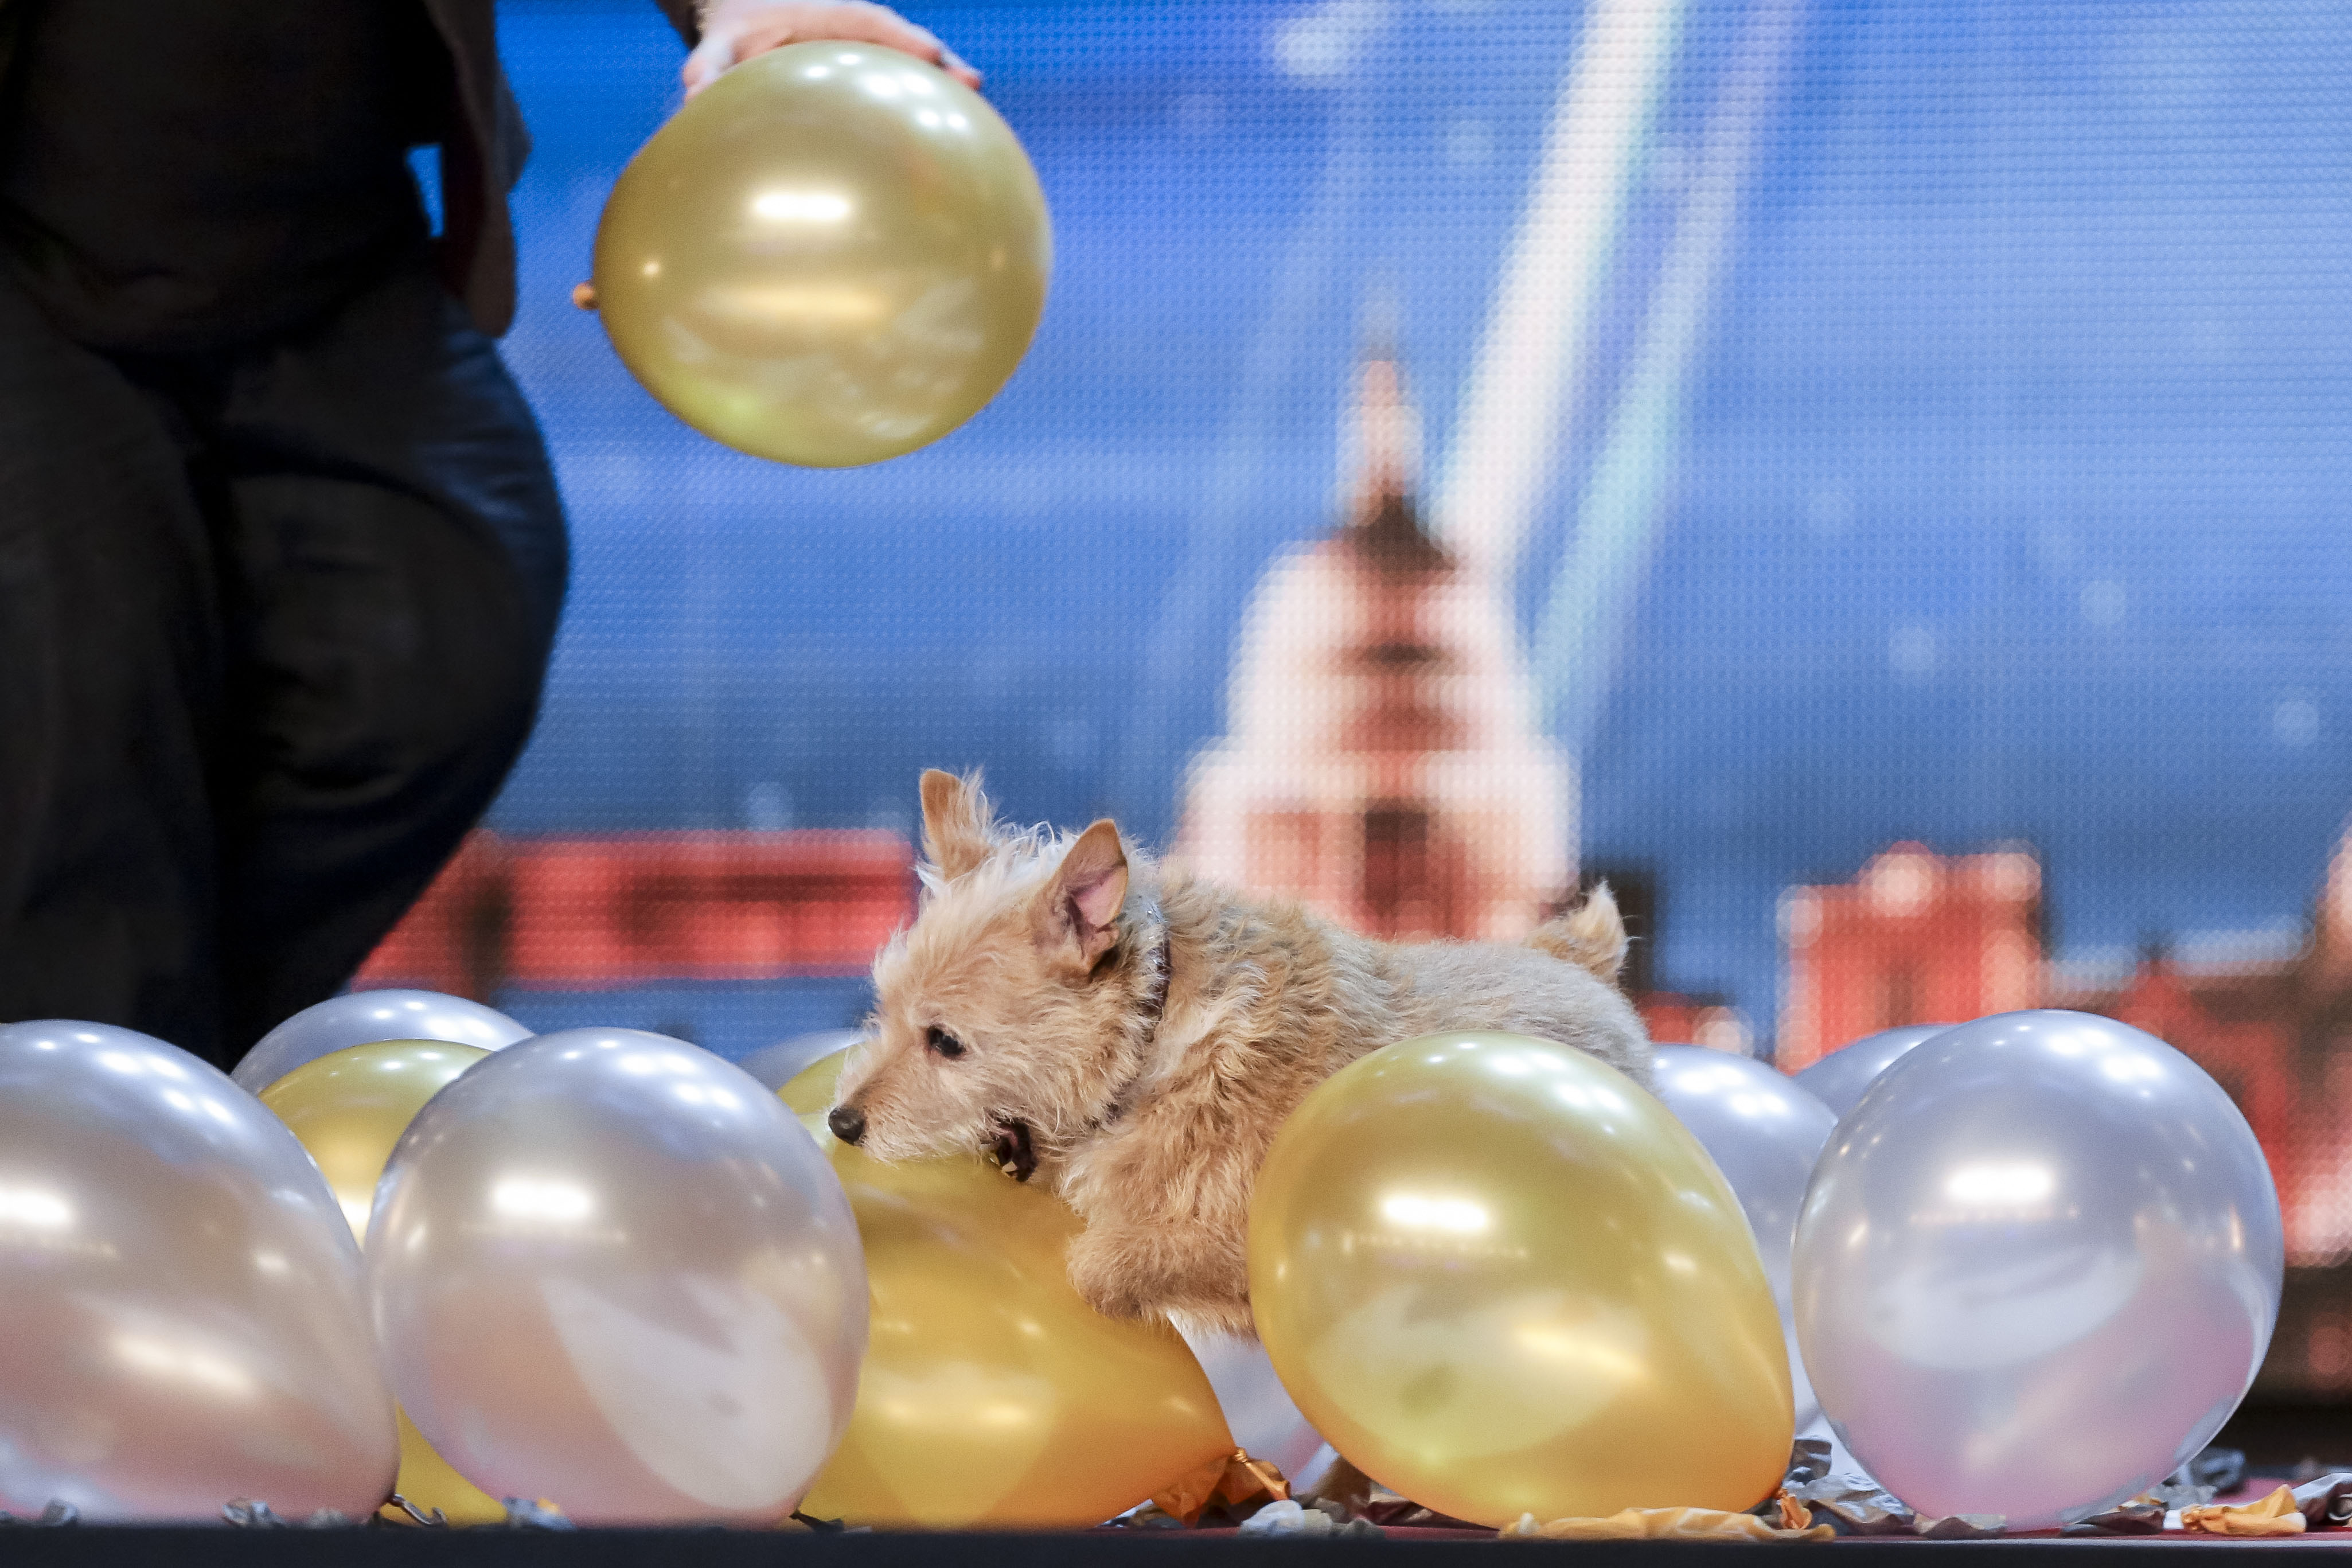 Video: Watch Cally 'The Wonderdog' set fastest time to pop 100 balloons record on Britain's Got Talent